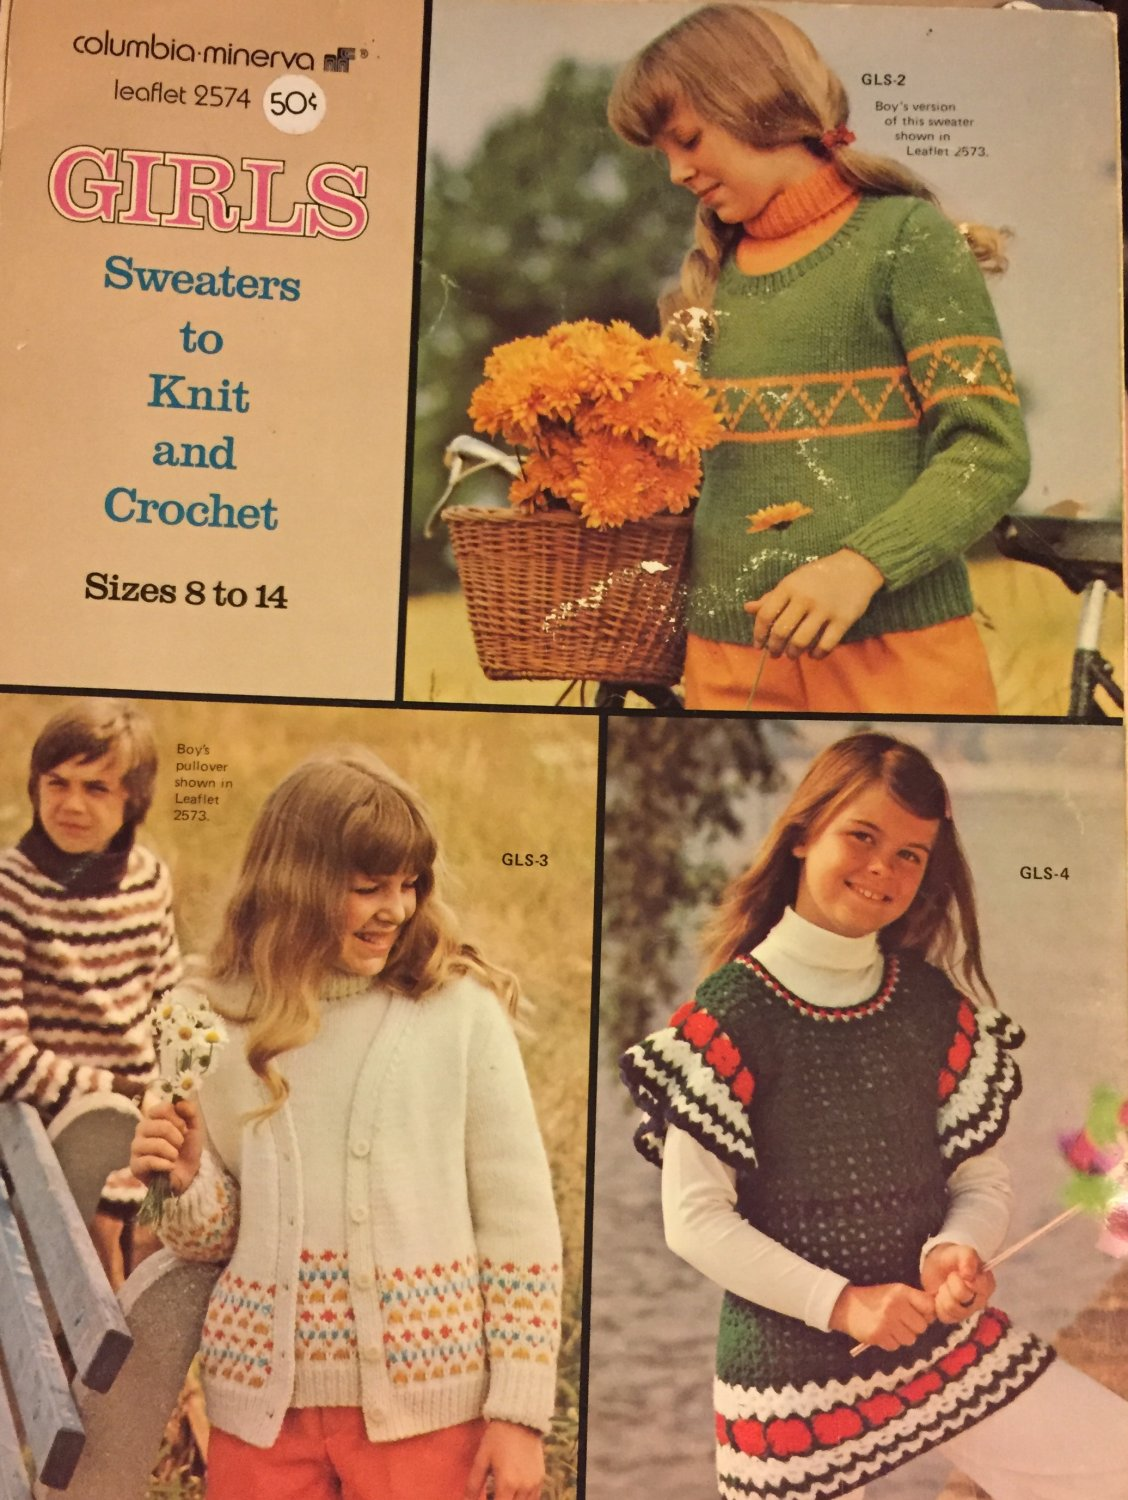 Girls Sweaters to Knit and Crochet sizes 8 - 14  Columbia Minerva 2574